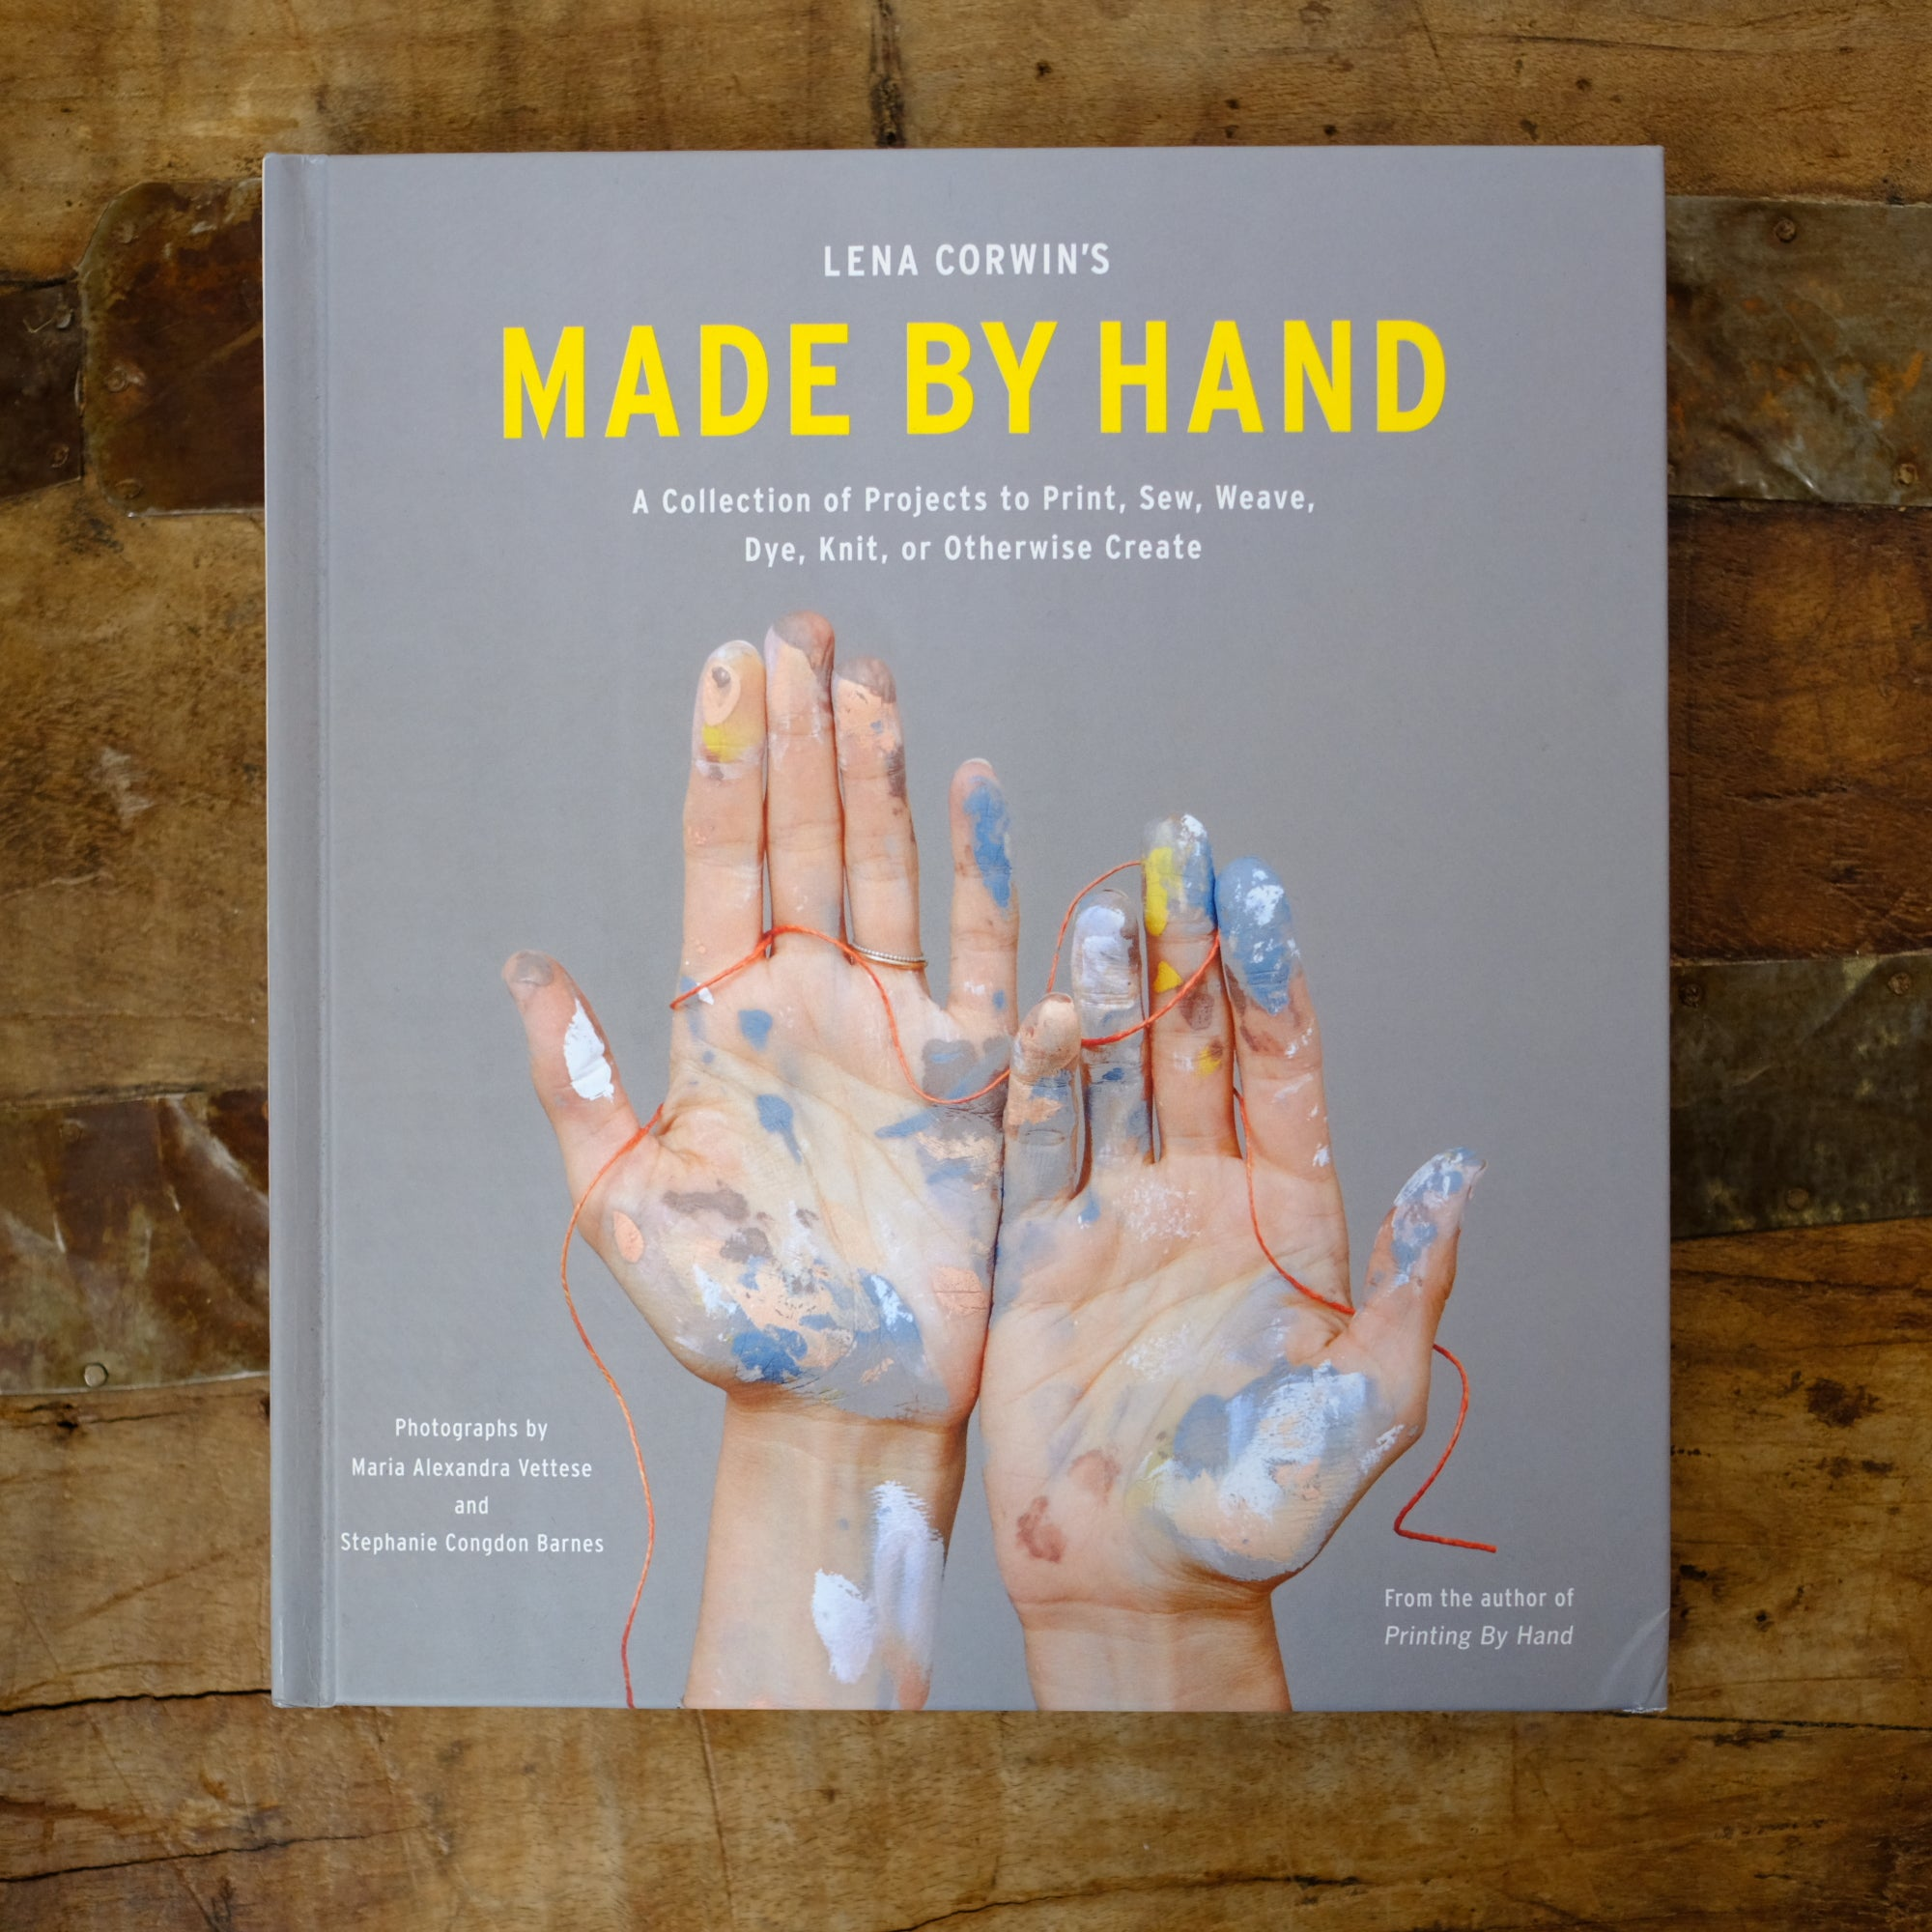 Made by Hand: A Collection of Projects to Print, Sew, Weave, Dye, Knit, or Otherwise Create by Lena Corwin - New!